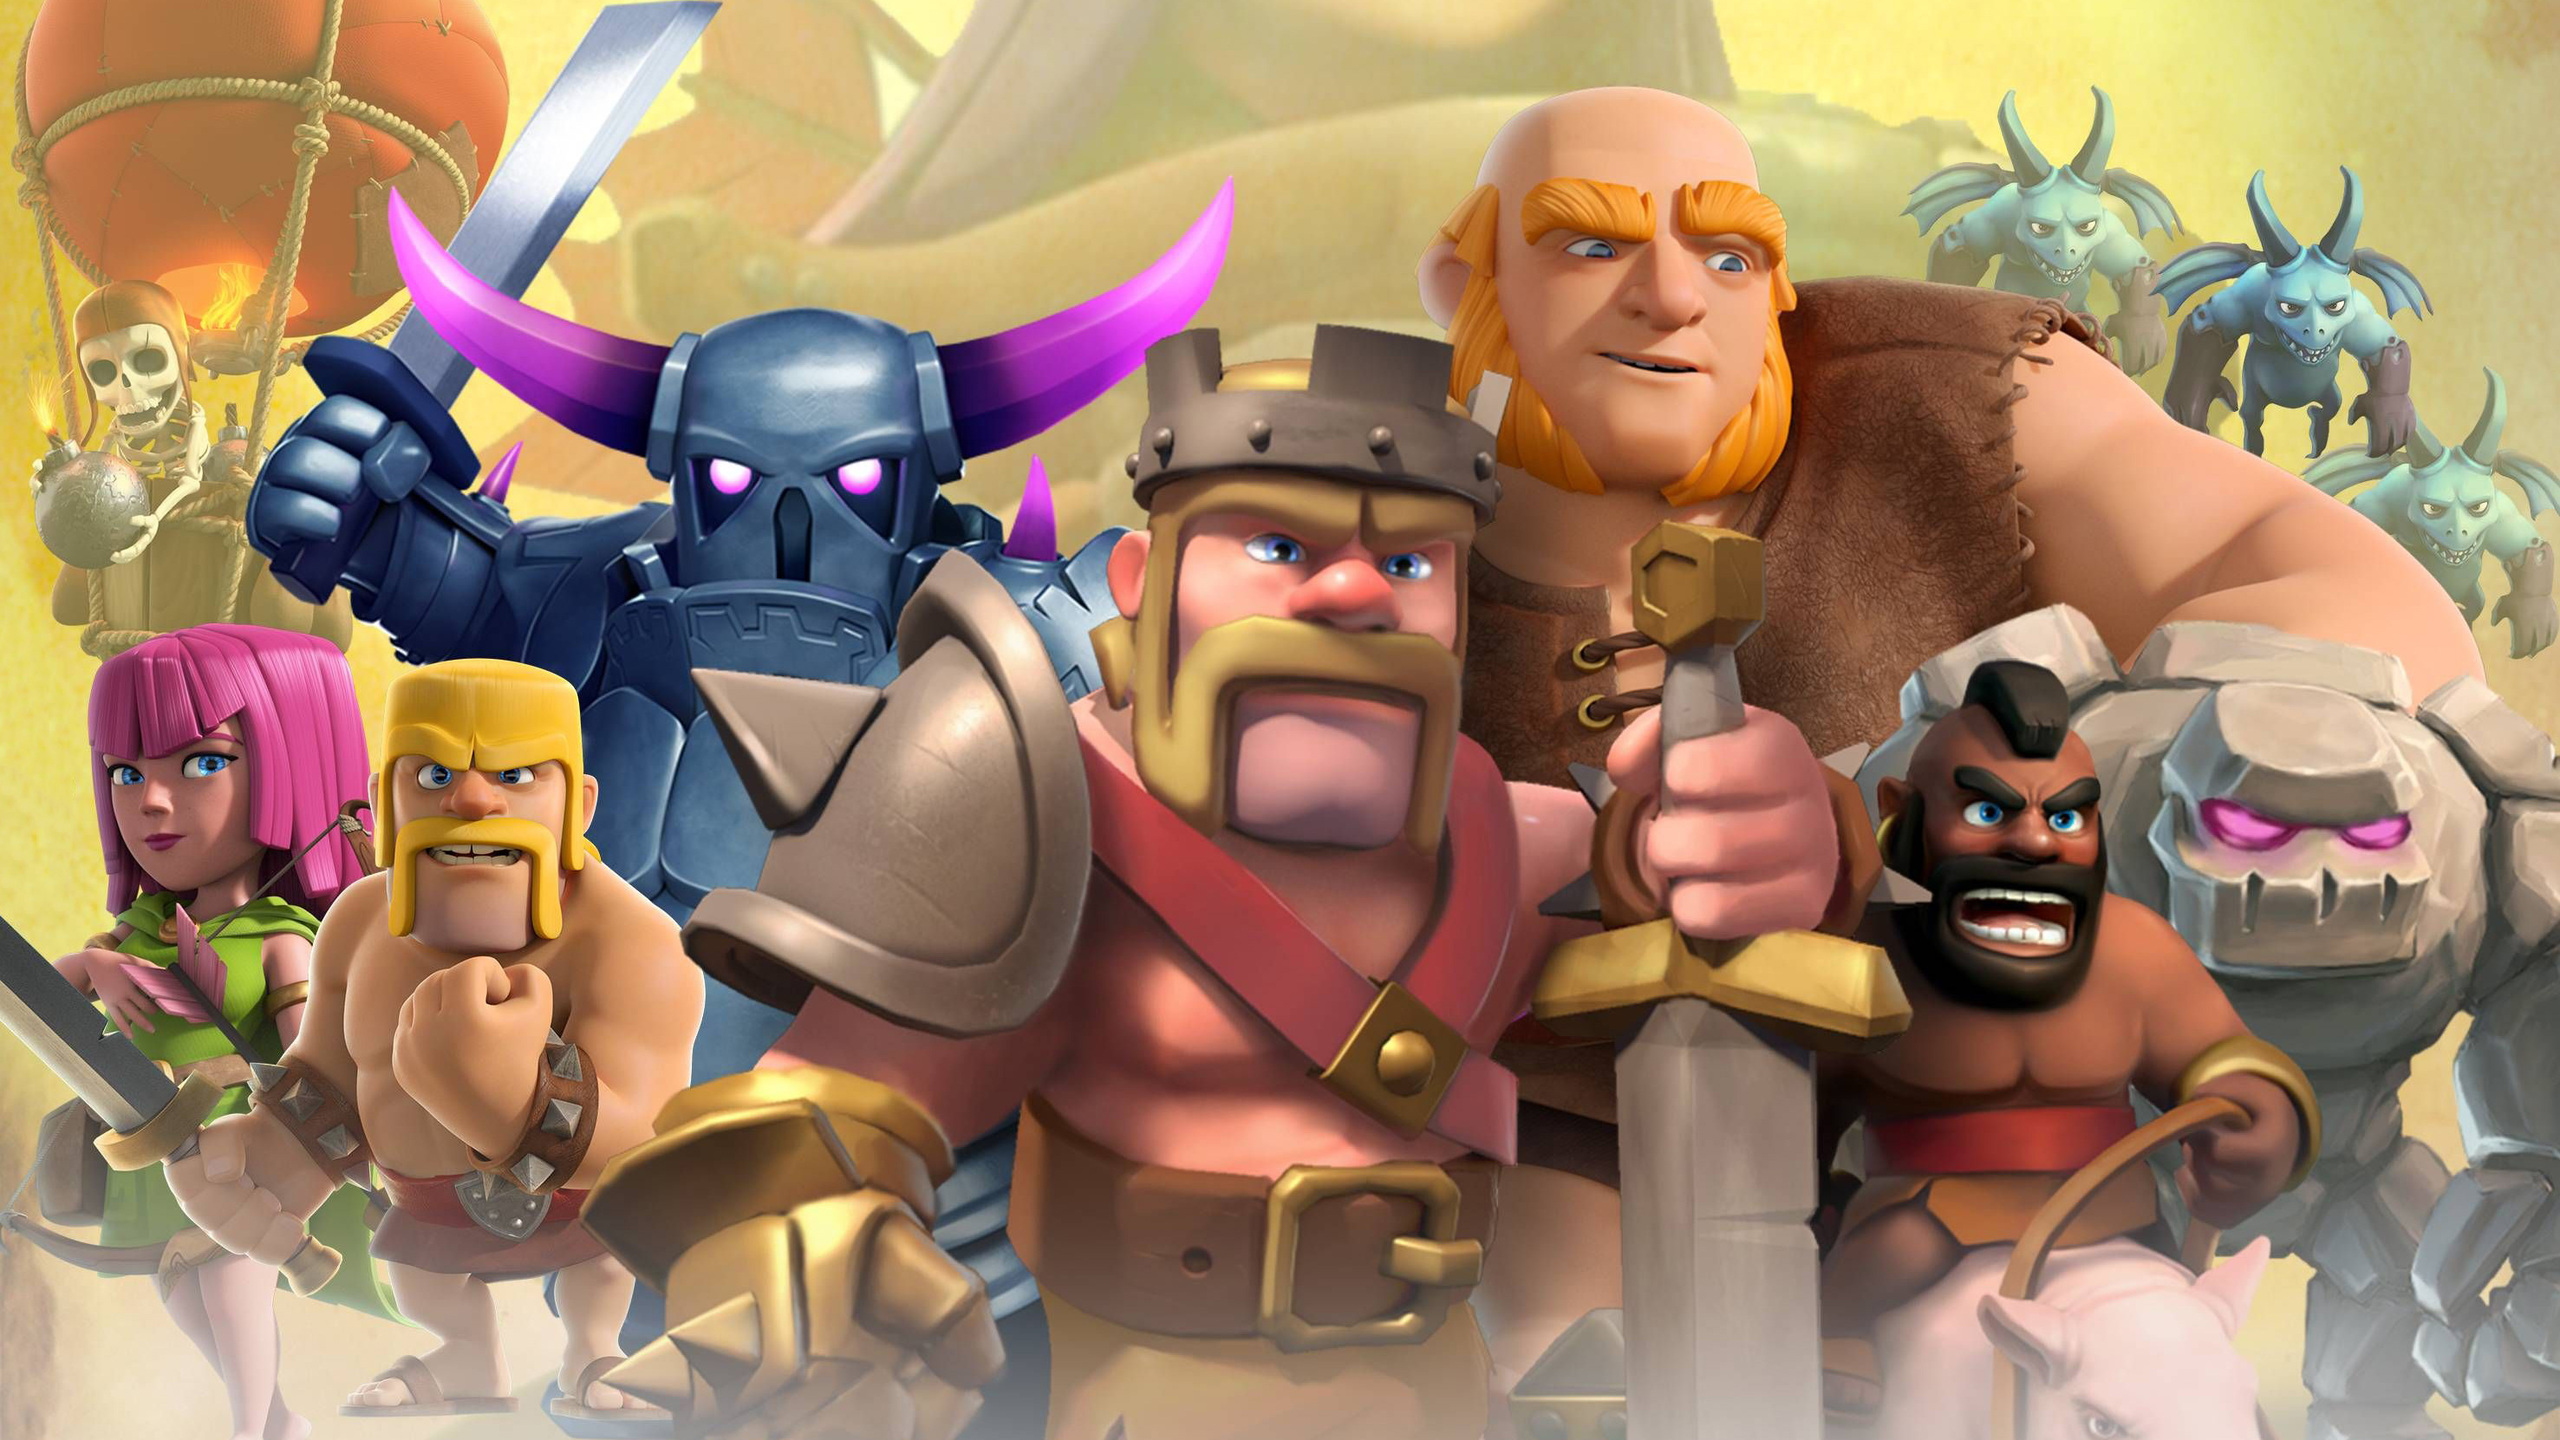 2560x1440 Clash Clans Mobile Game 1440P Resolution HD 4k